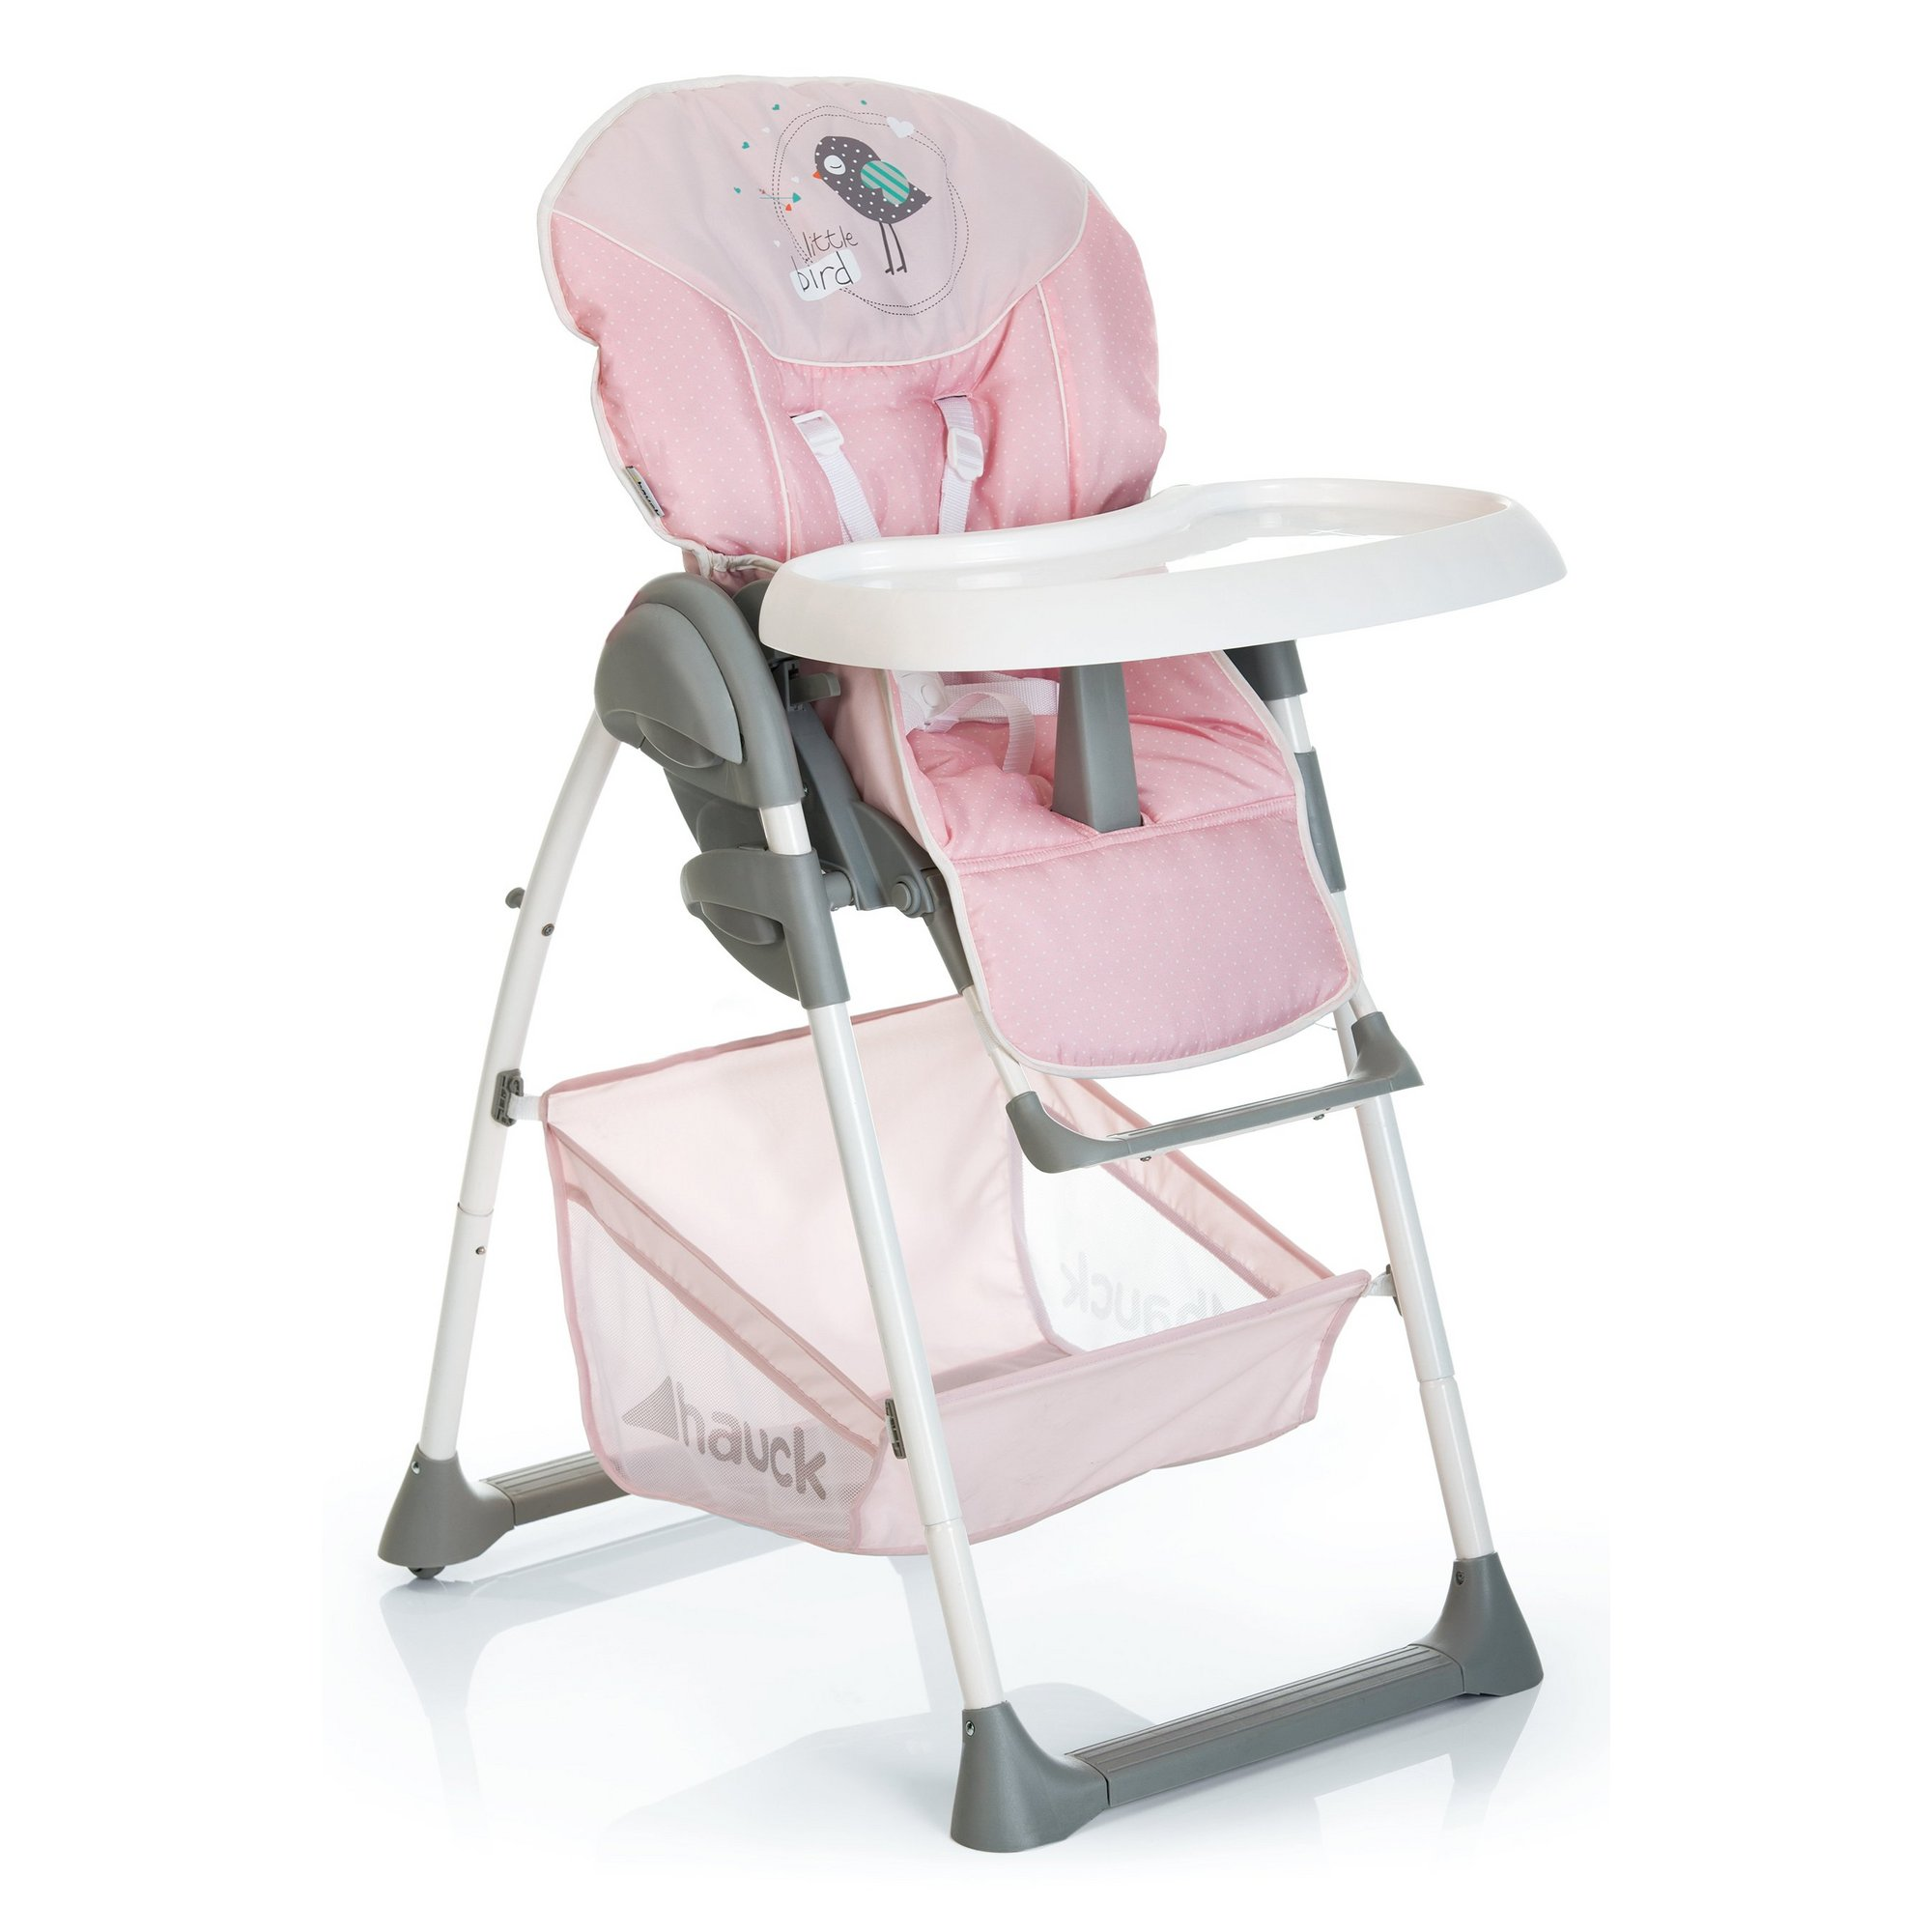 Image of Hauck Sit n Relax Highchair - Birdie